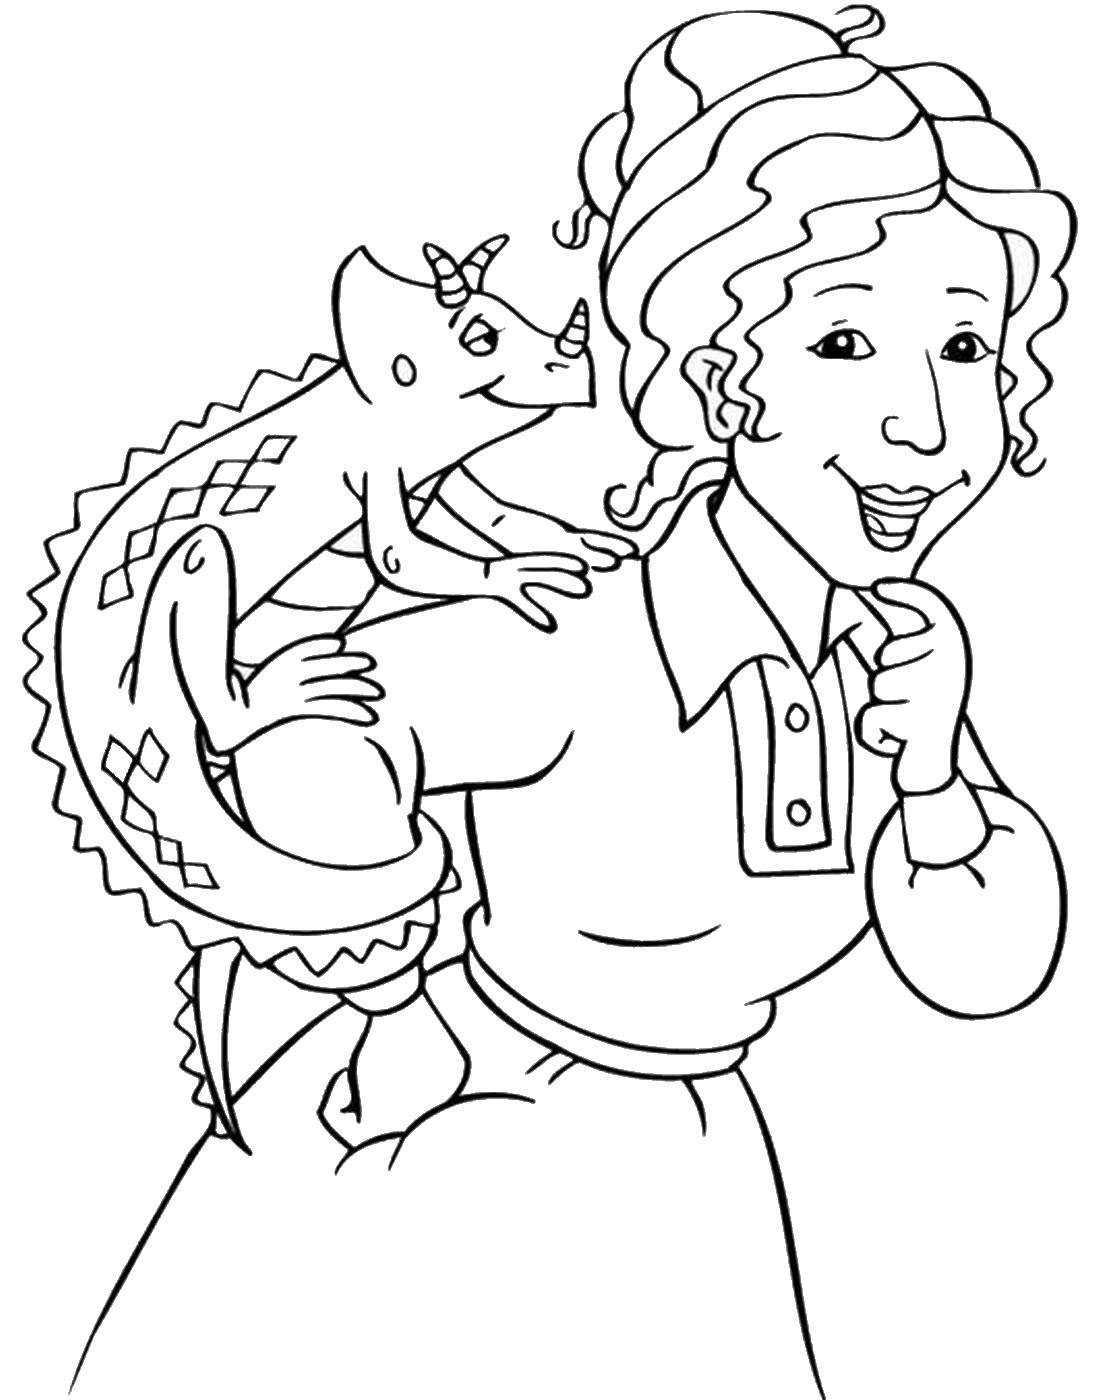 Magic Bus Coloring Pages